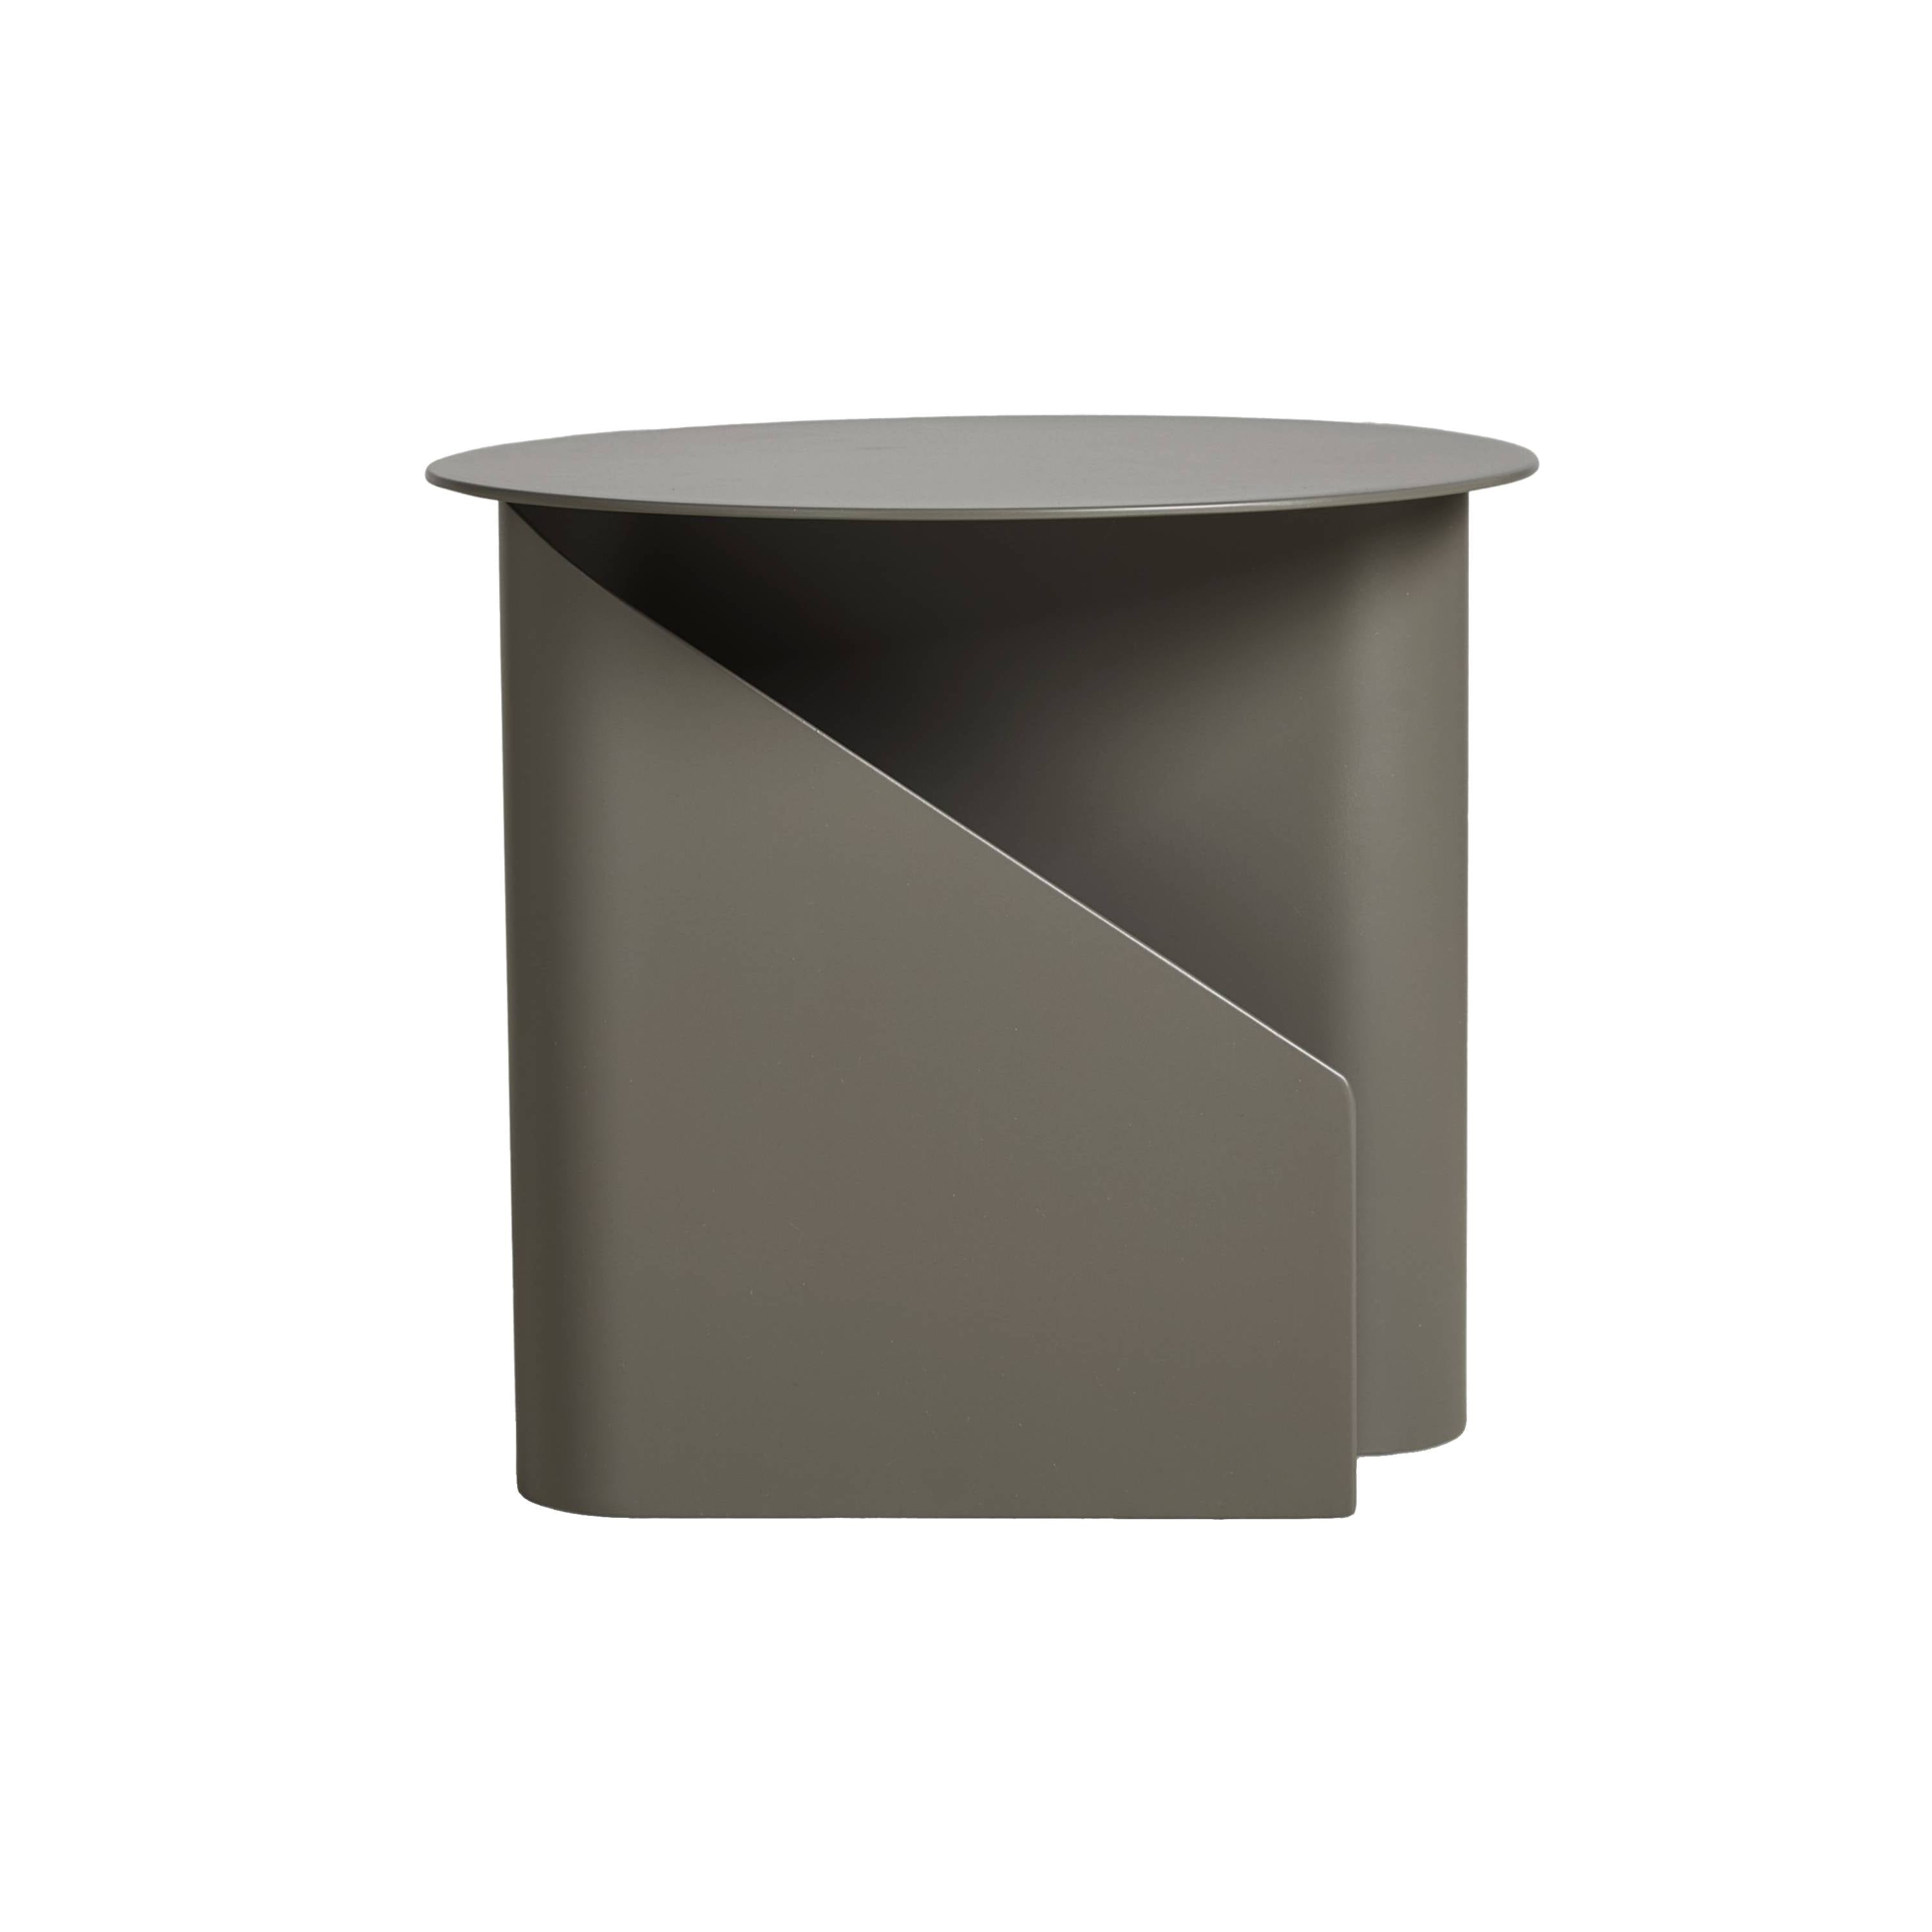 Sentrum Side Table: Taupe